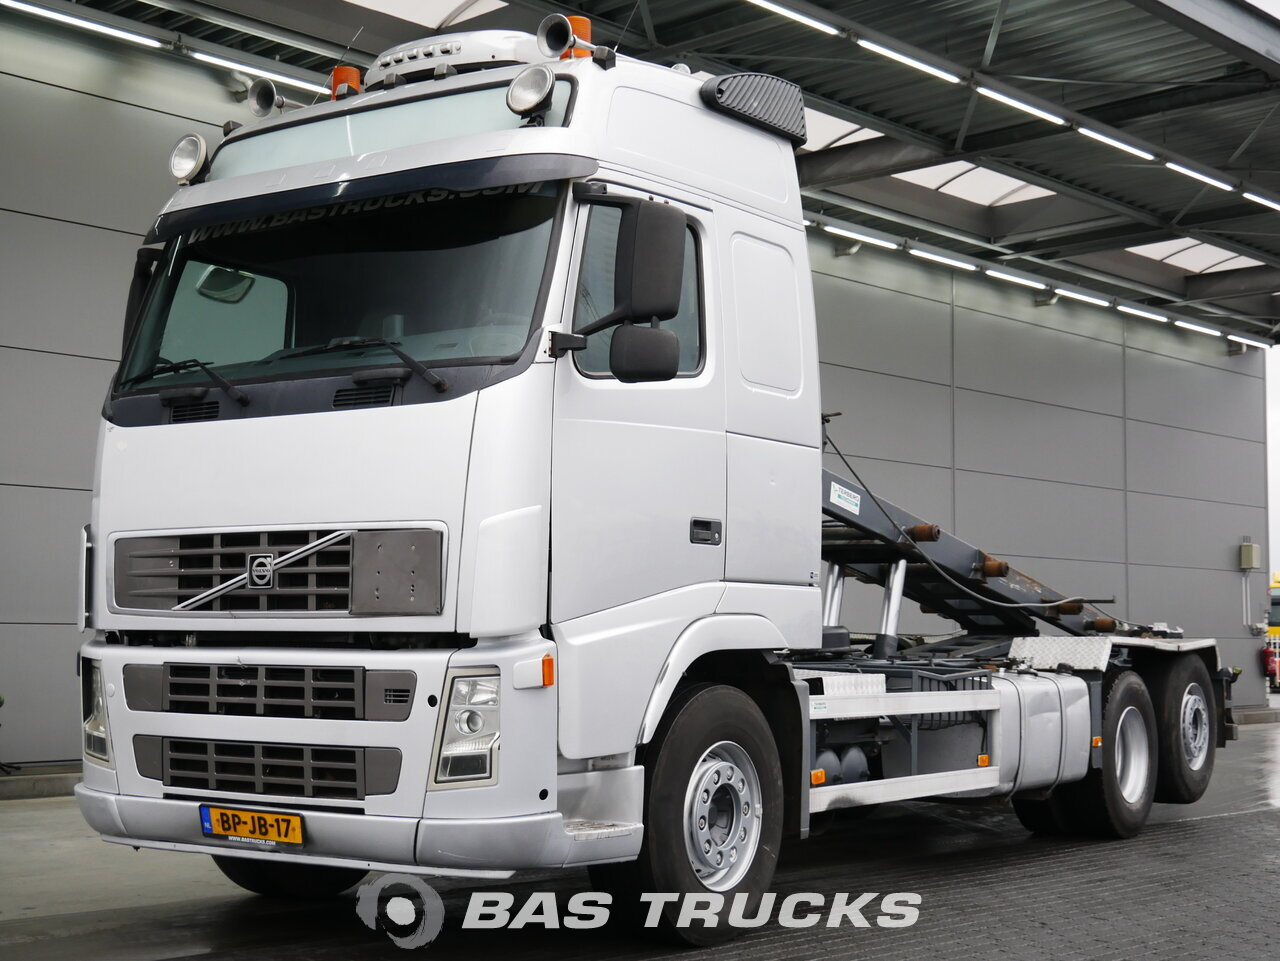 For sale at BAS Trucks: Volvo FH12 460 6X2 04/2004